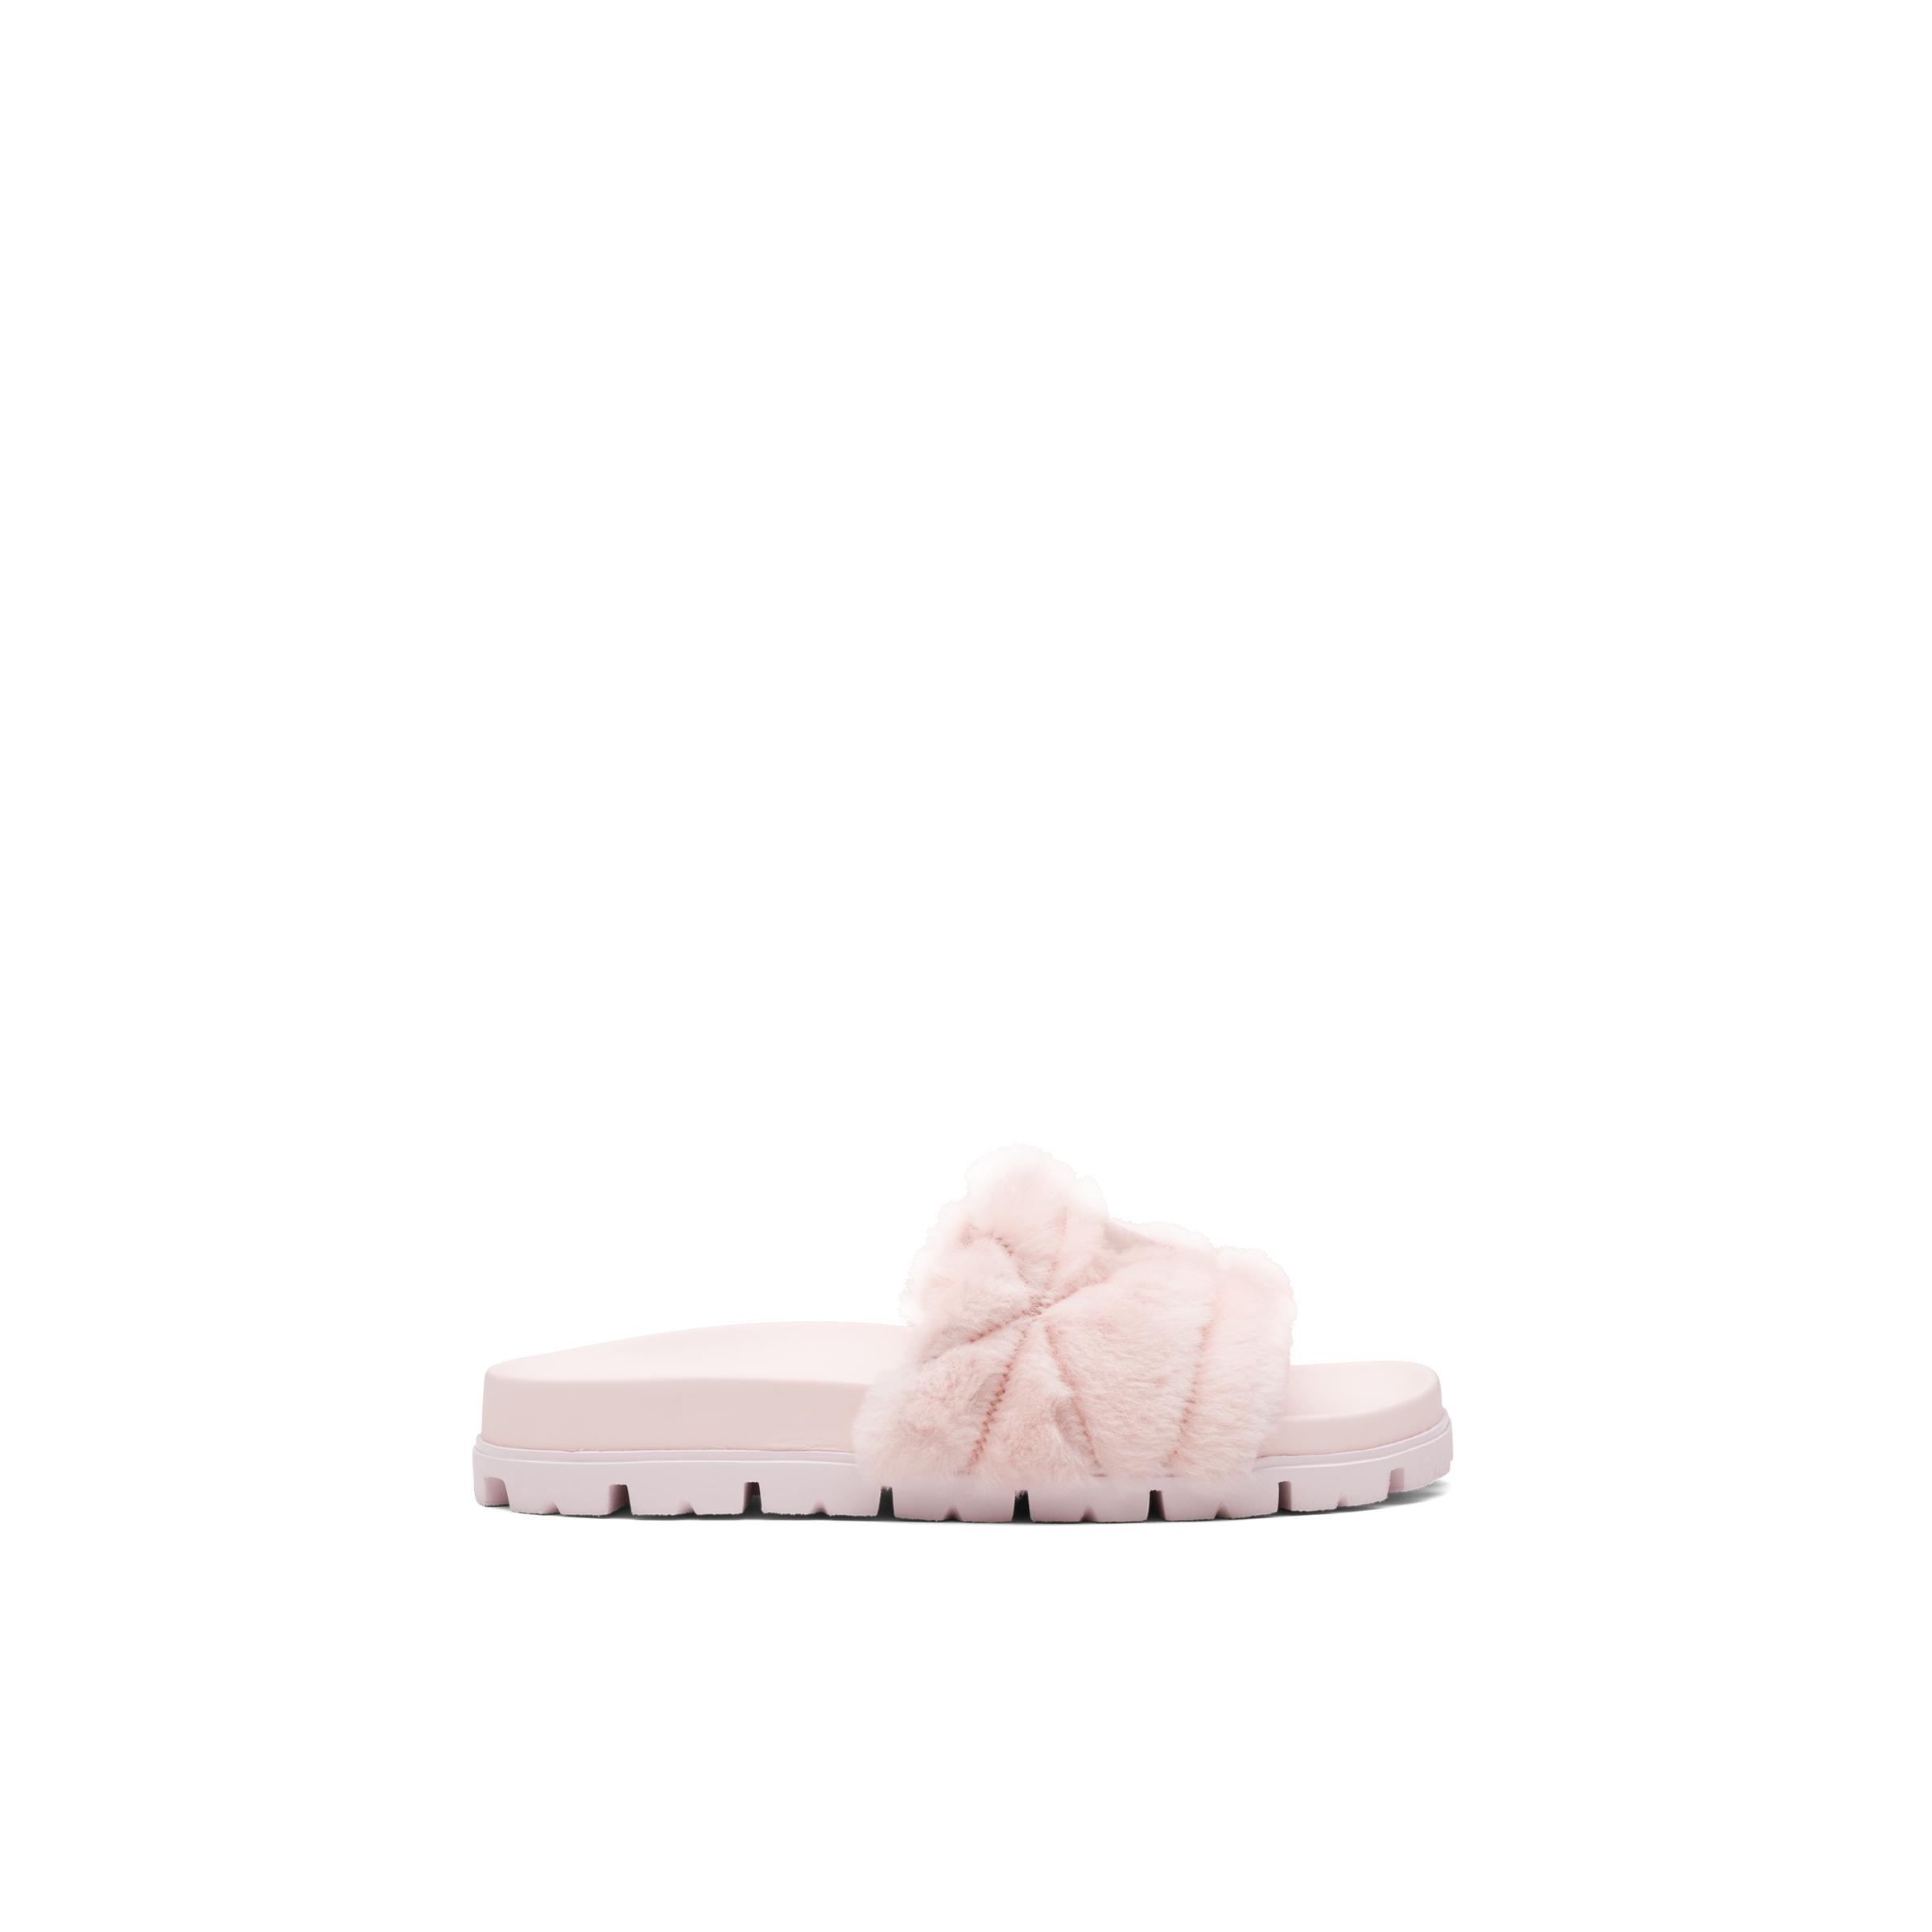 Shearling Slides Women Orchid Pink 2